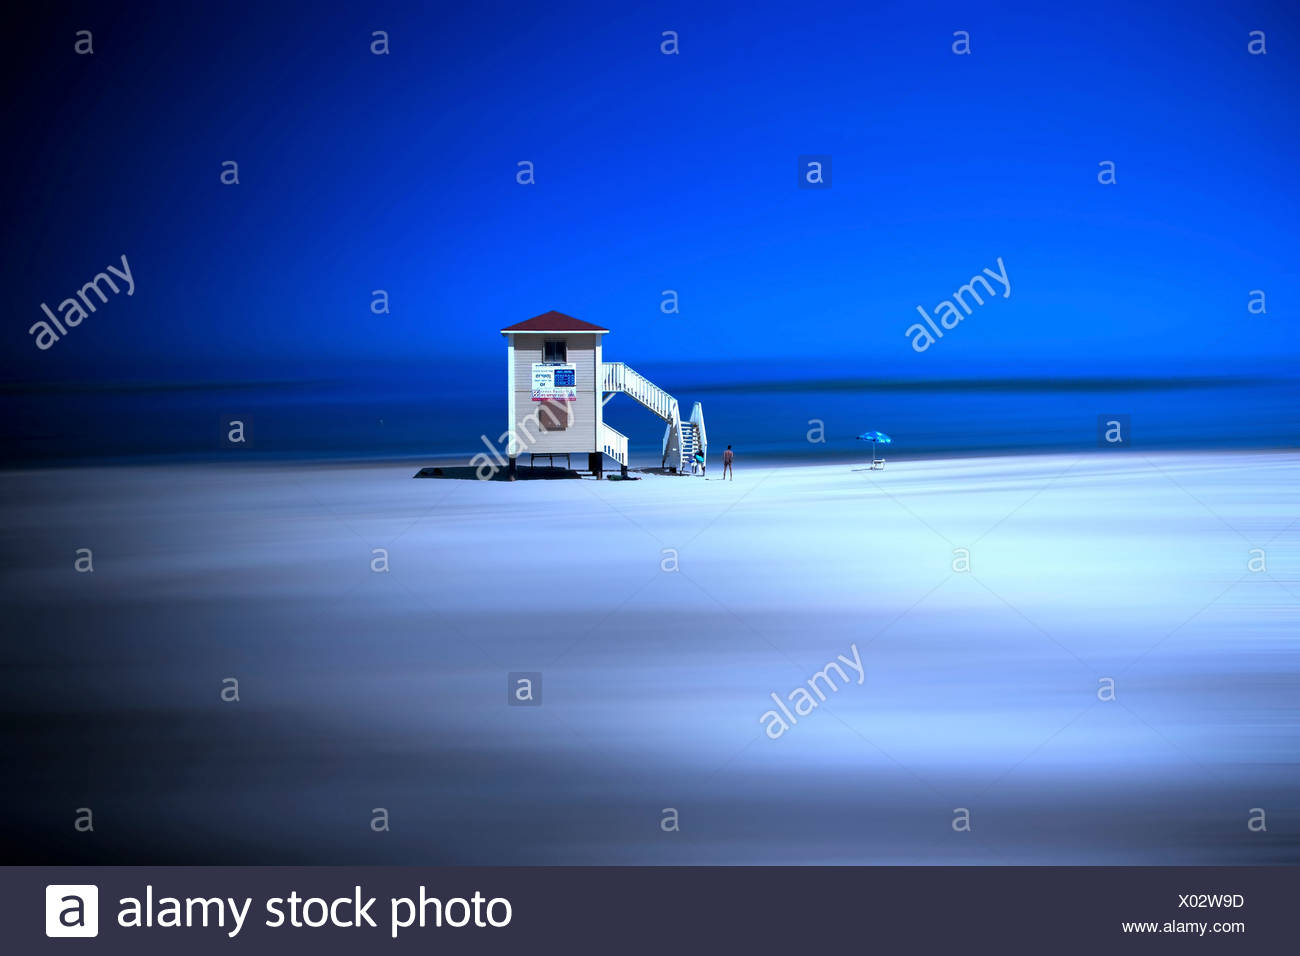 Scenic view with distorted landscape and sky with watch tower with silhouetted figures - Stock Image